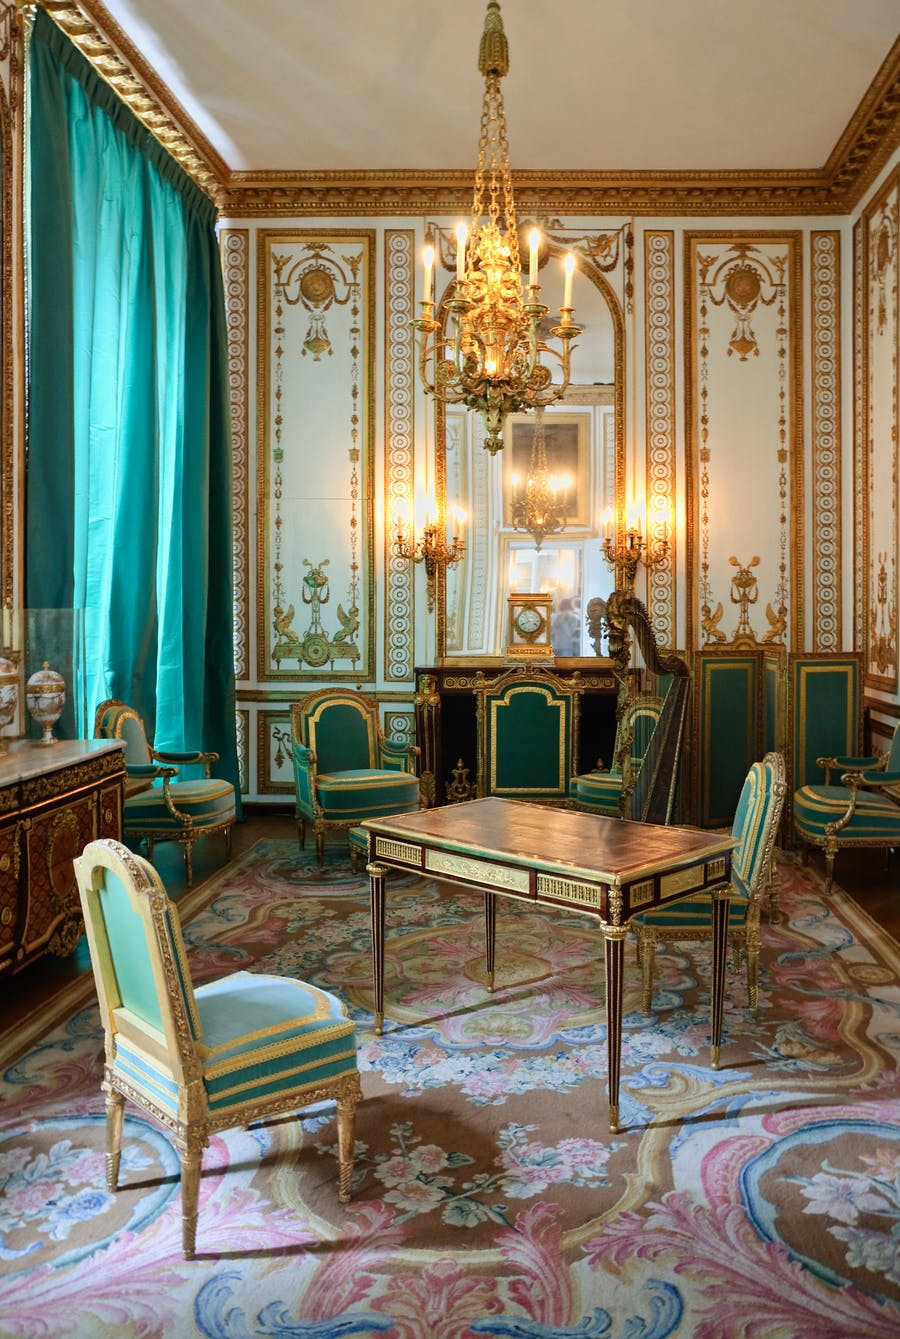 Palace of Versailles, interior chambers of the Queen, one of Marie-Antoinette's offices by Jean-Henri Riesener, 1783, image © Myrabella / Wikimedia Commons / CC BY-SA 3.0